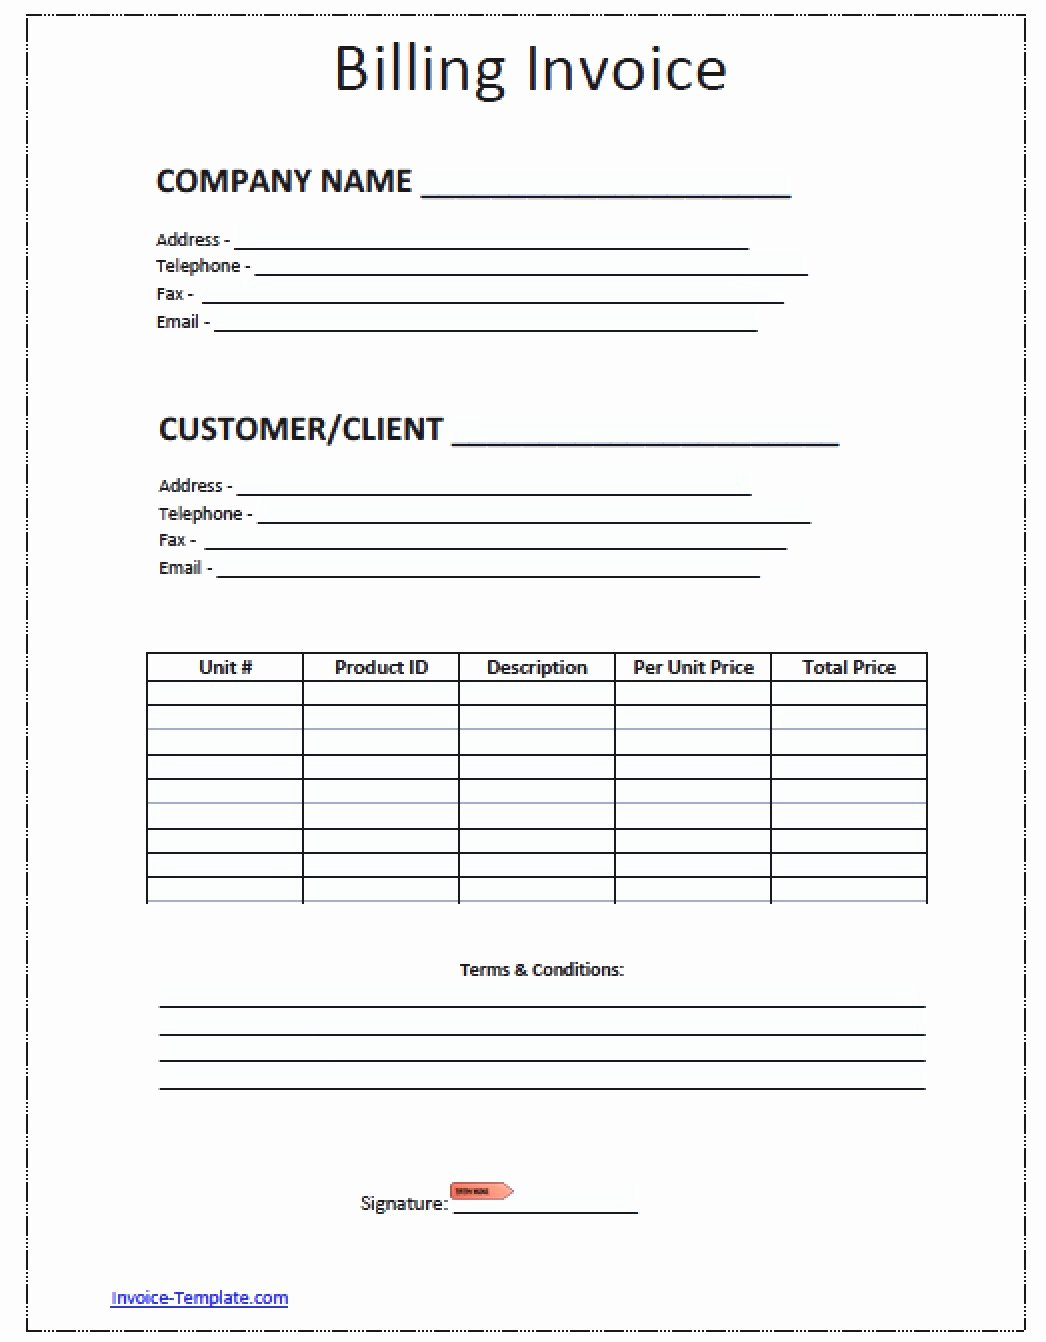 Invoice and Receipt Template Best Of Bill Receipt Template Mughals